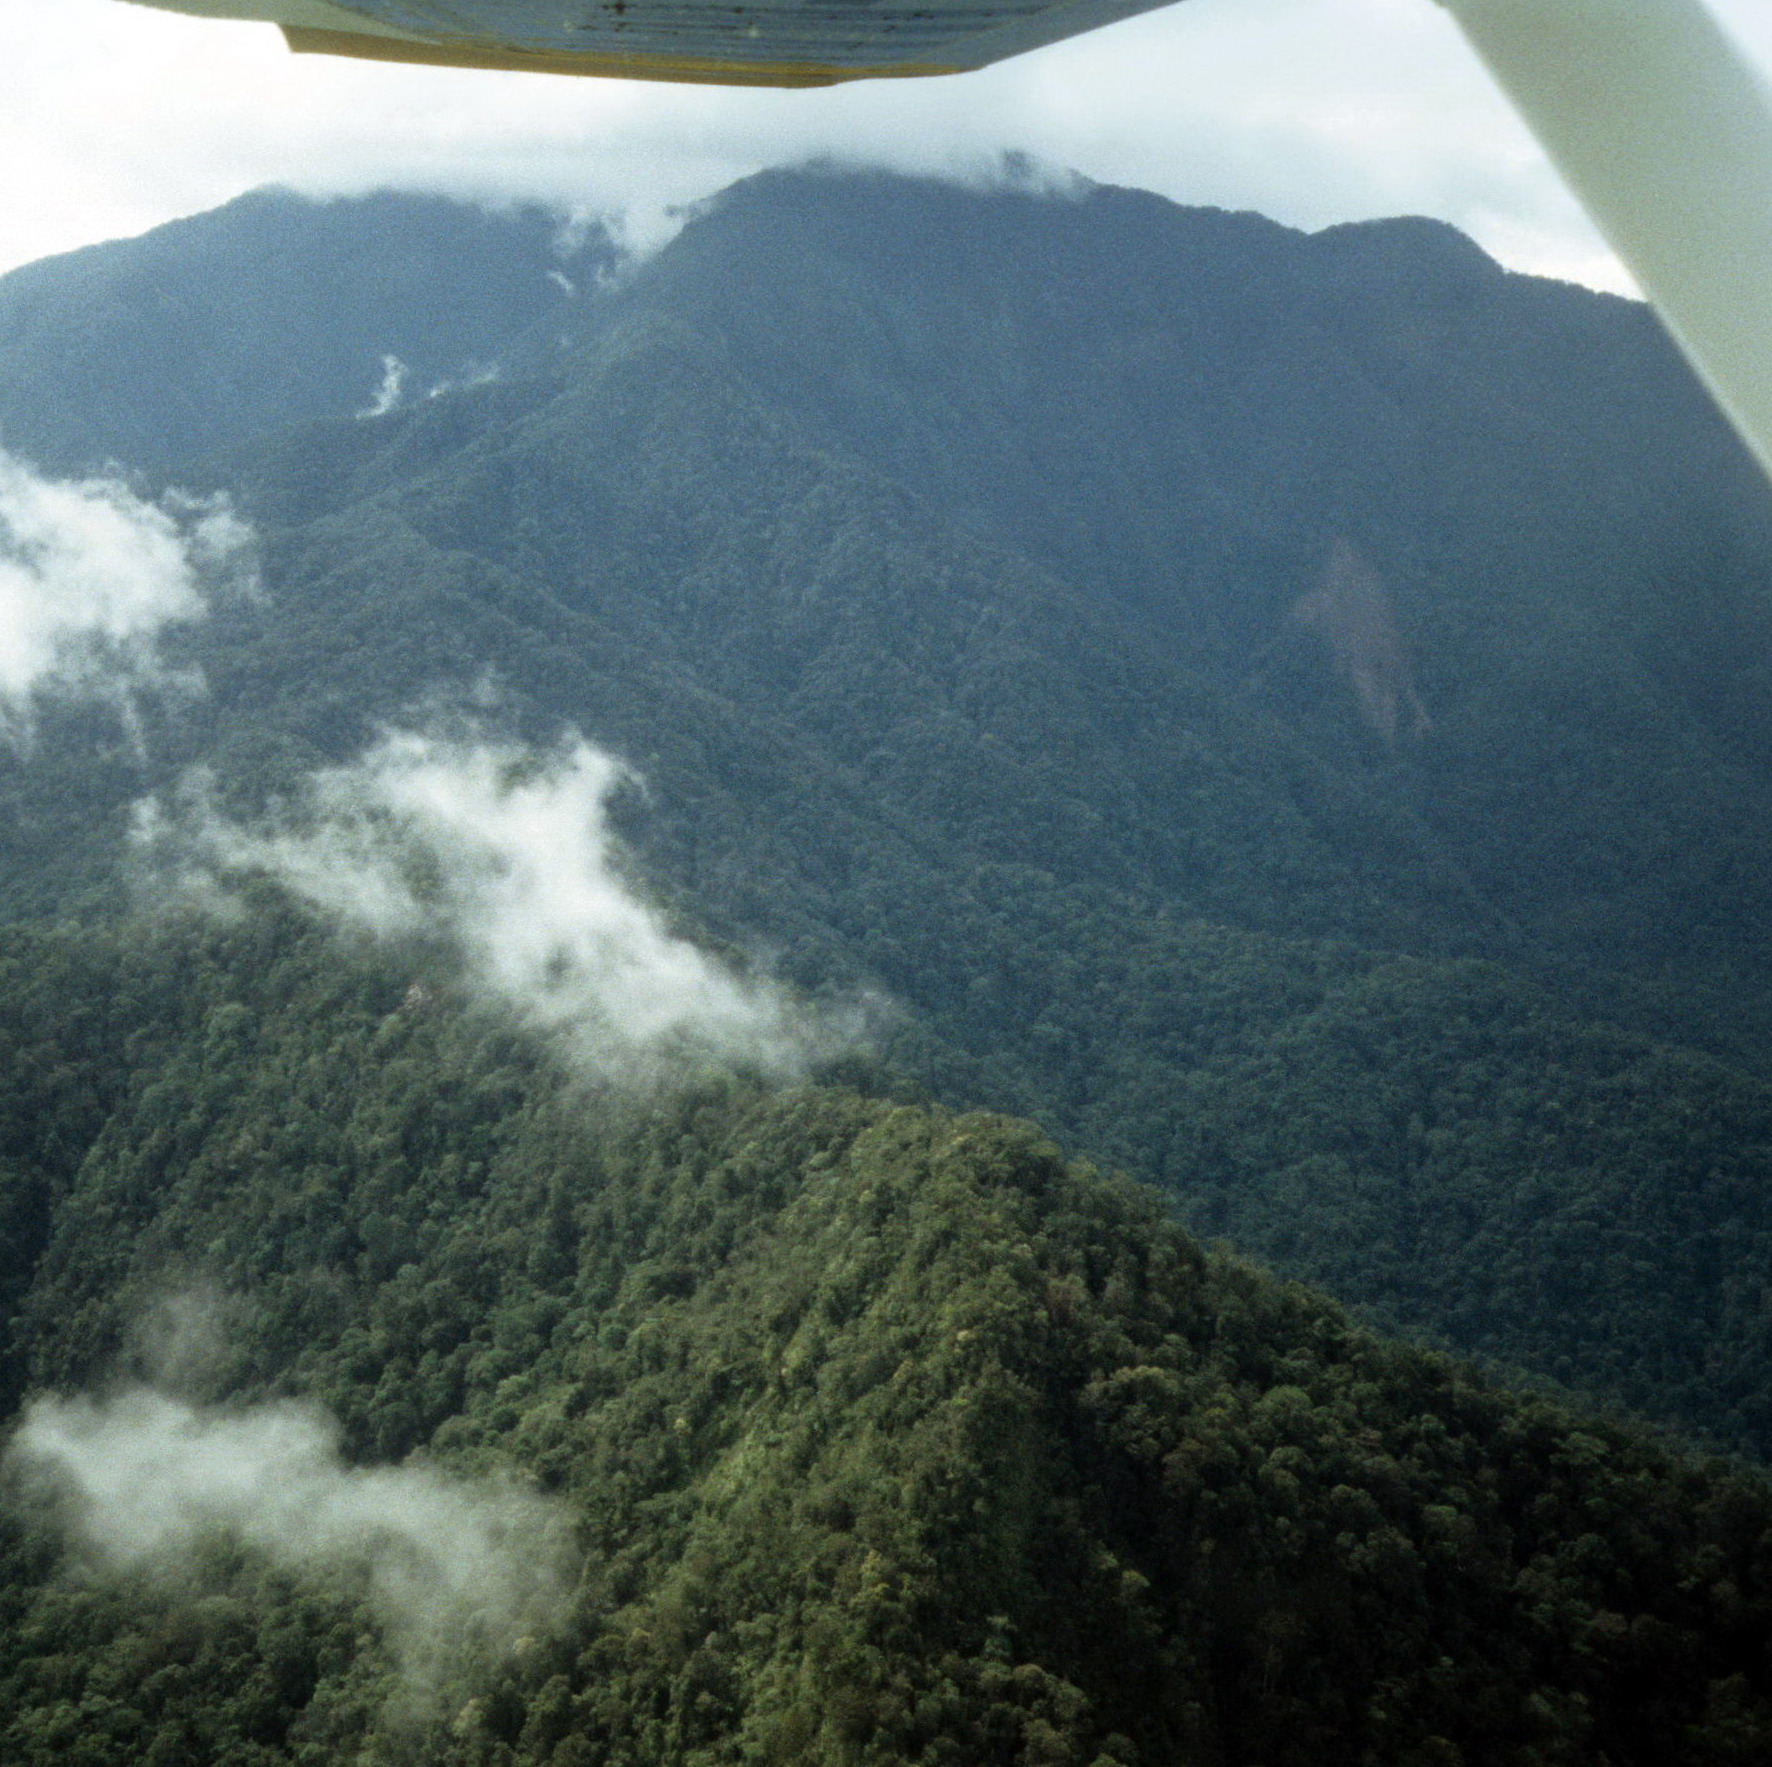 New Guinea Jungle From the Air, Field Collecting New Guinea Art in Situ